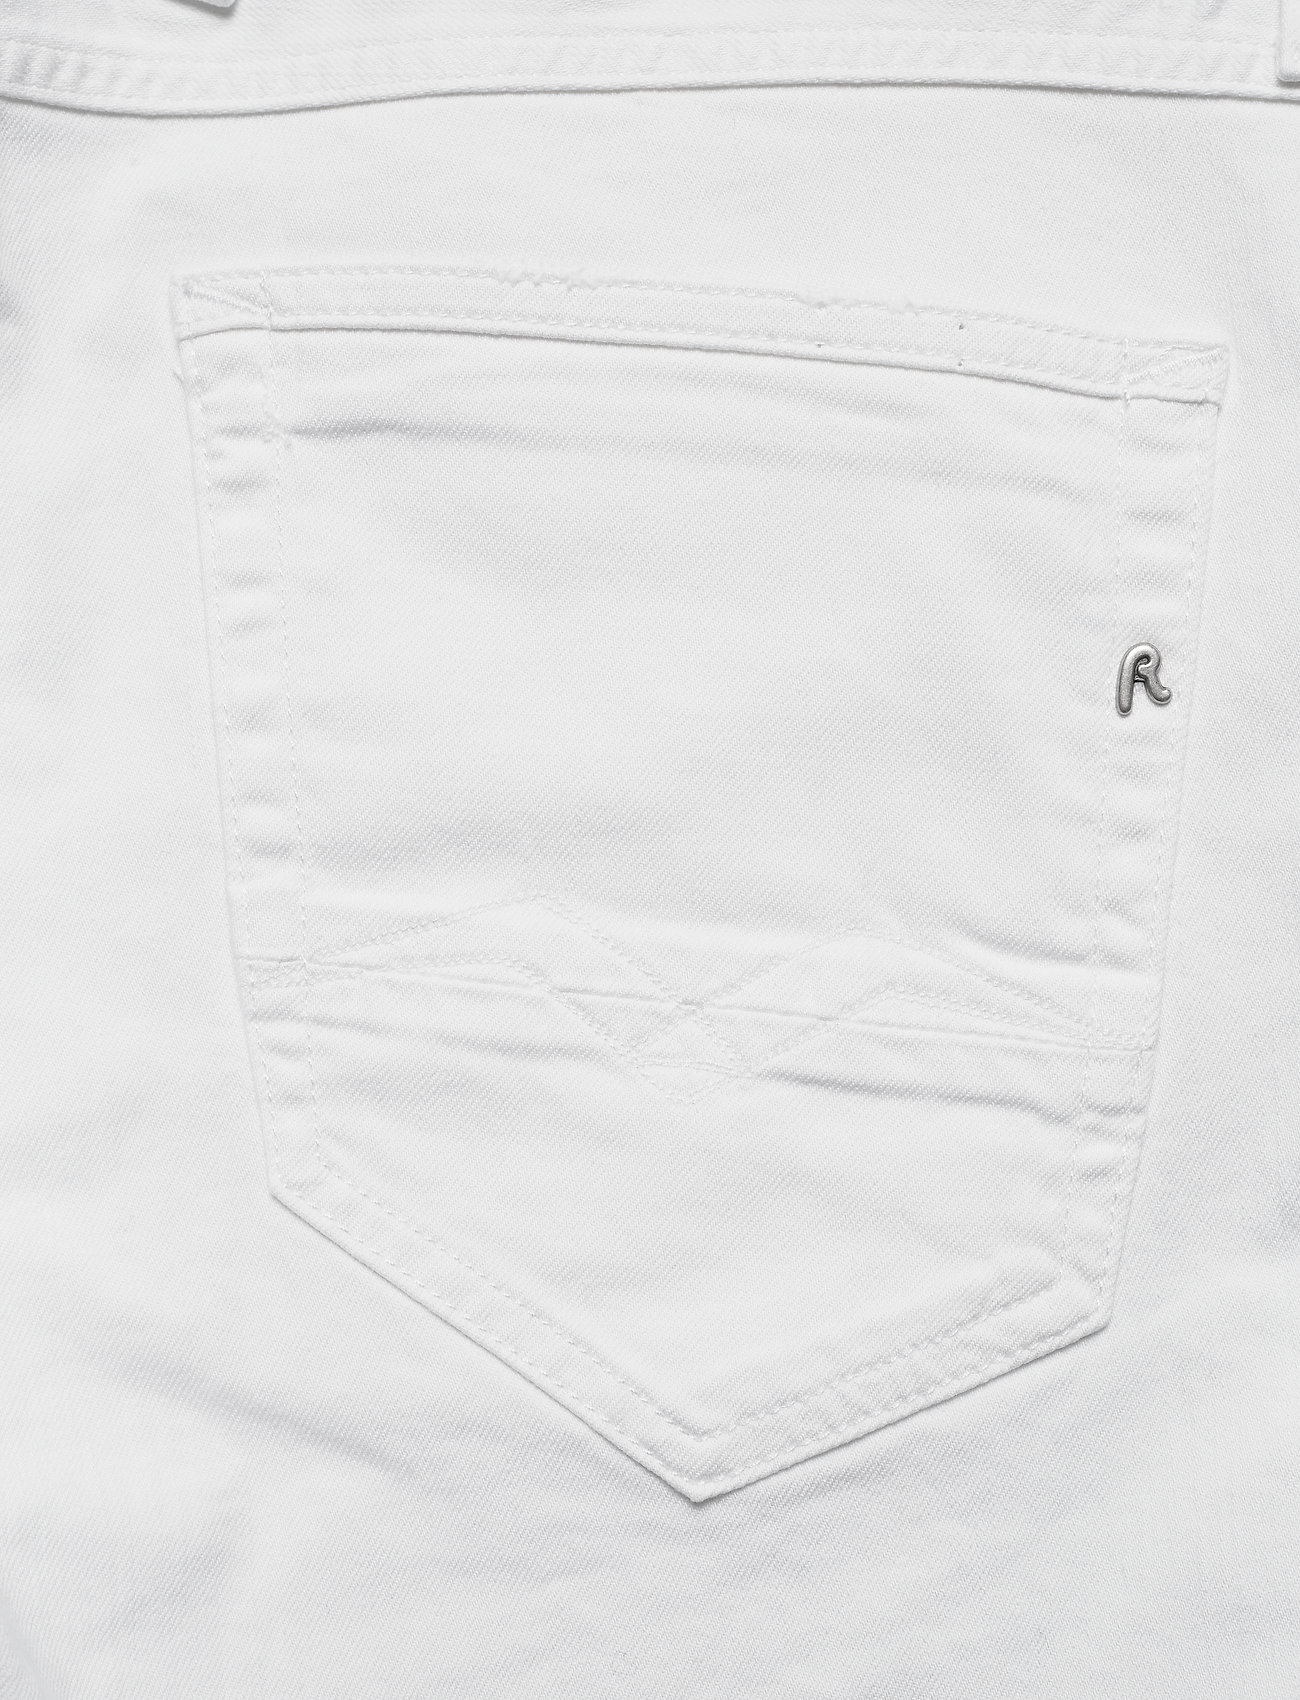 Replay Anbass Coin Zip - Jeans White